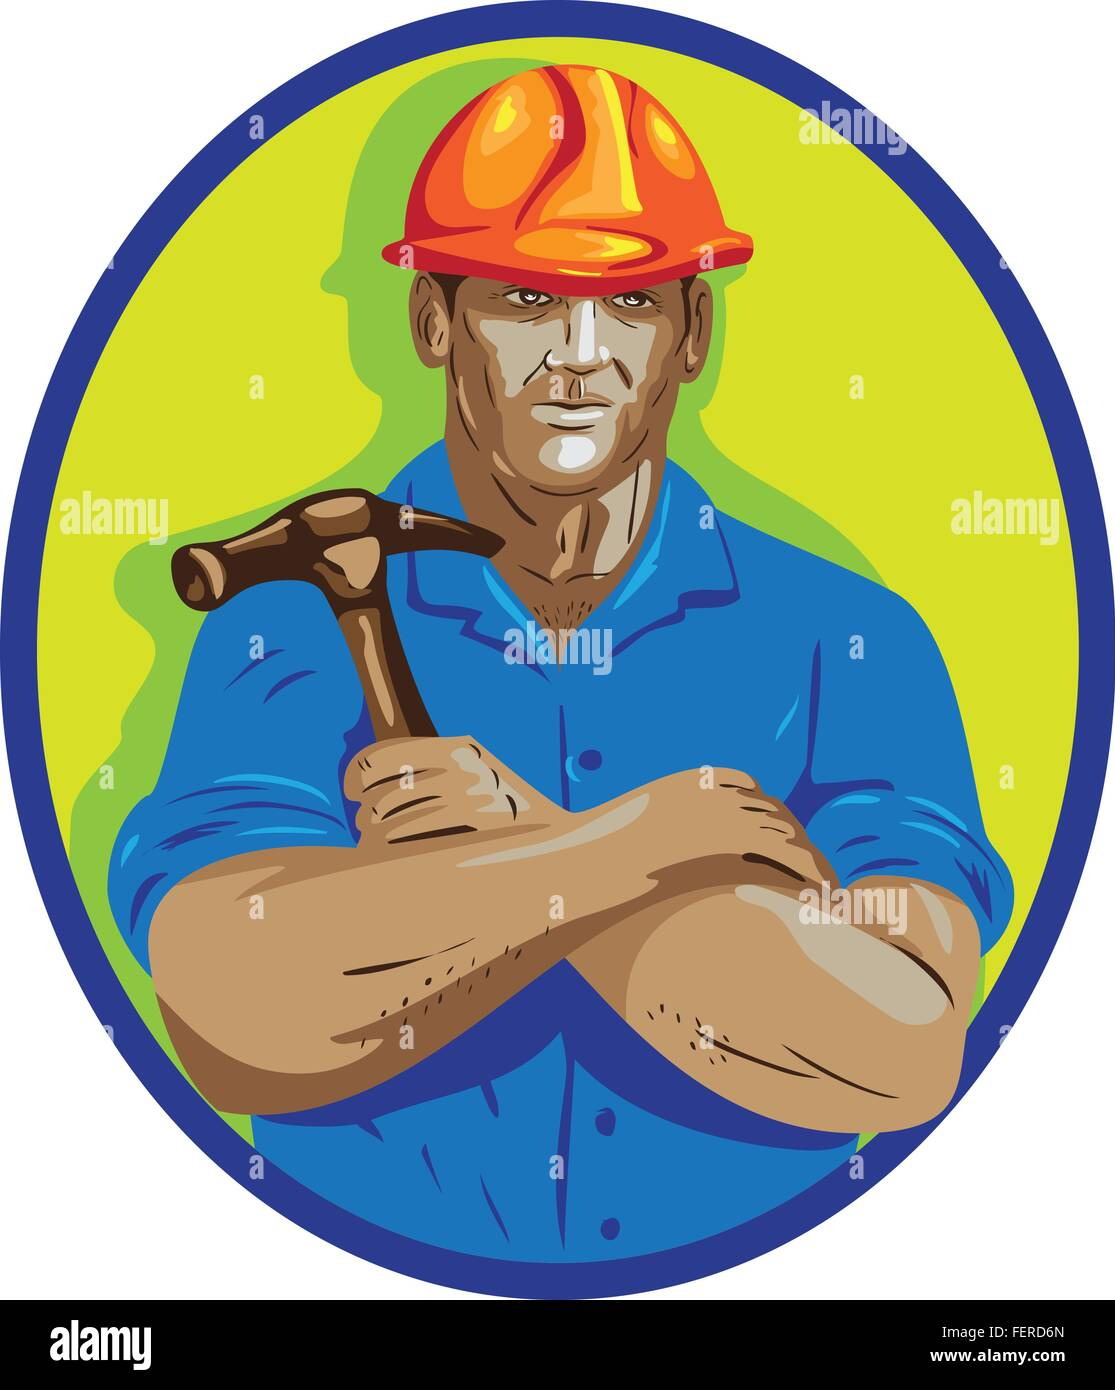 WPA style illustration of a construction worker wearing hardhat holding hammer with arms crossed viewed from front - Stock Vector